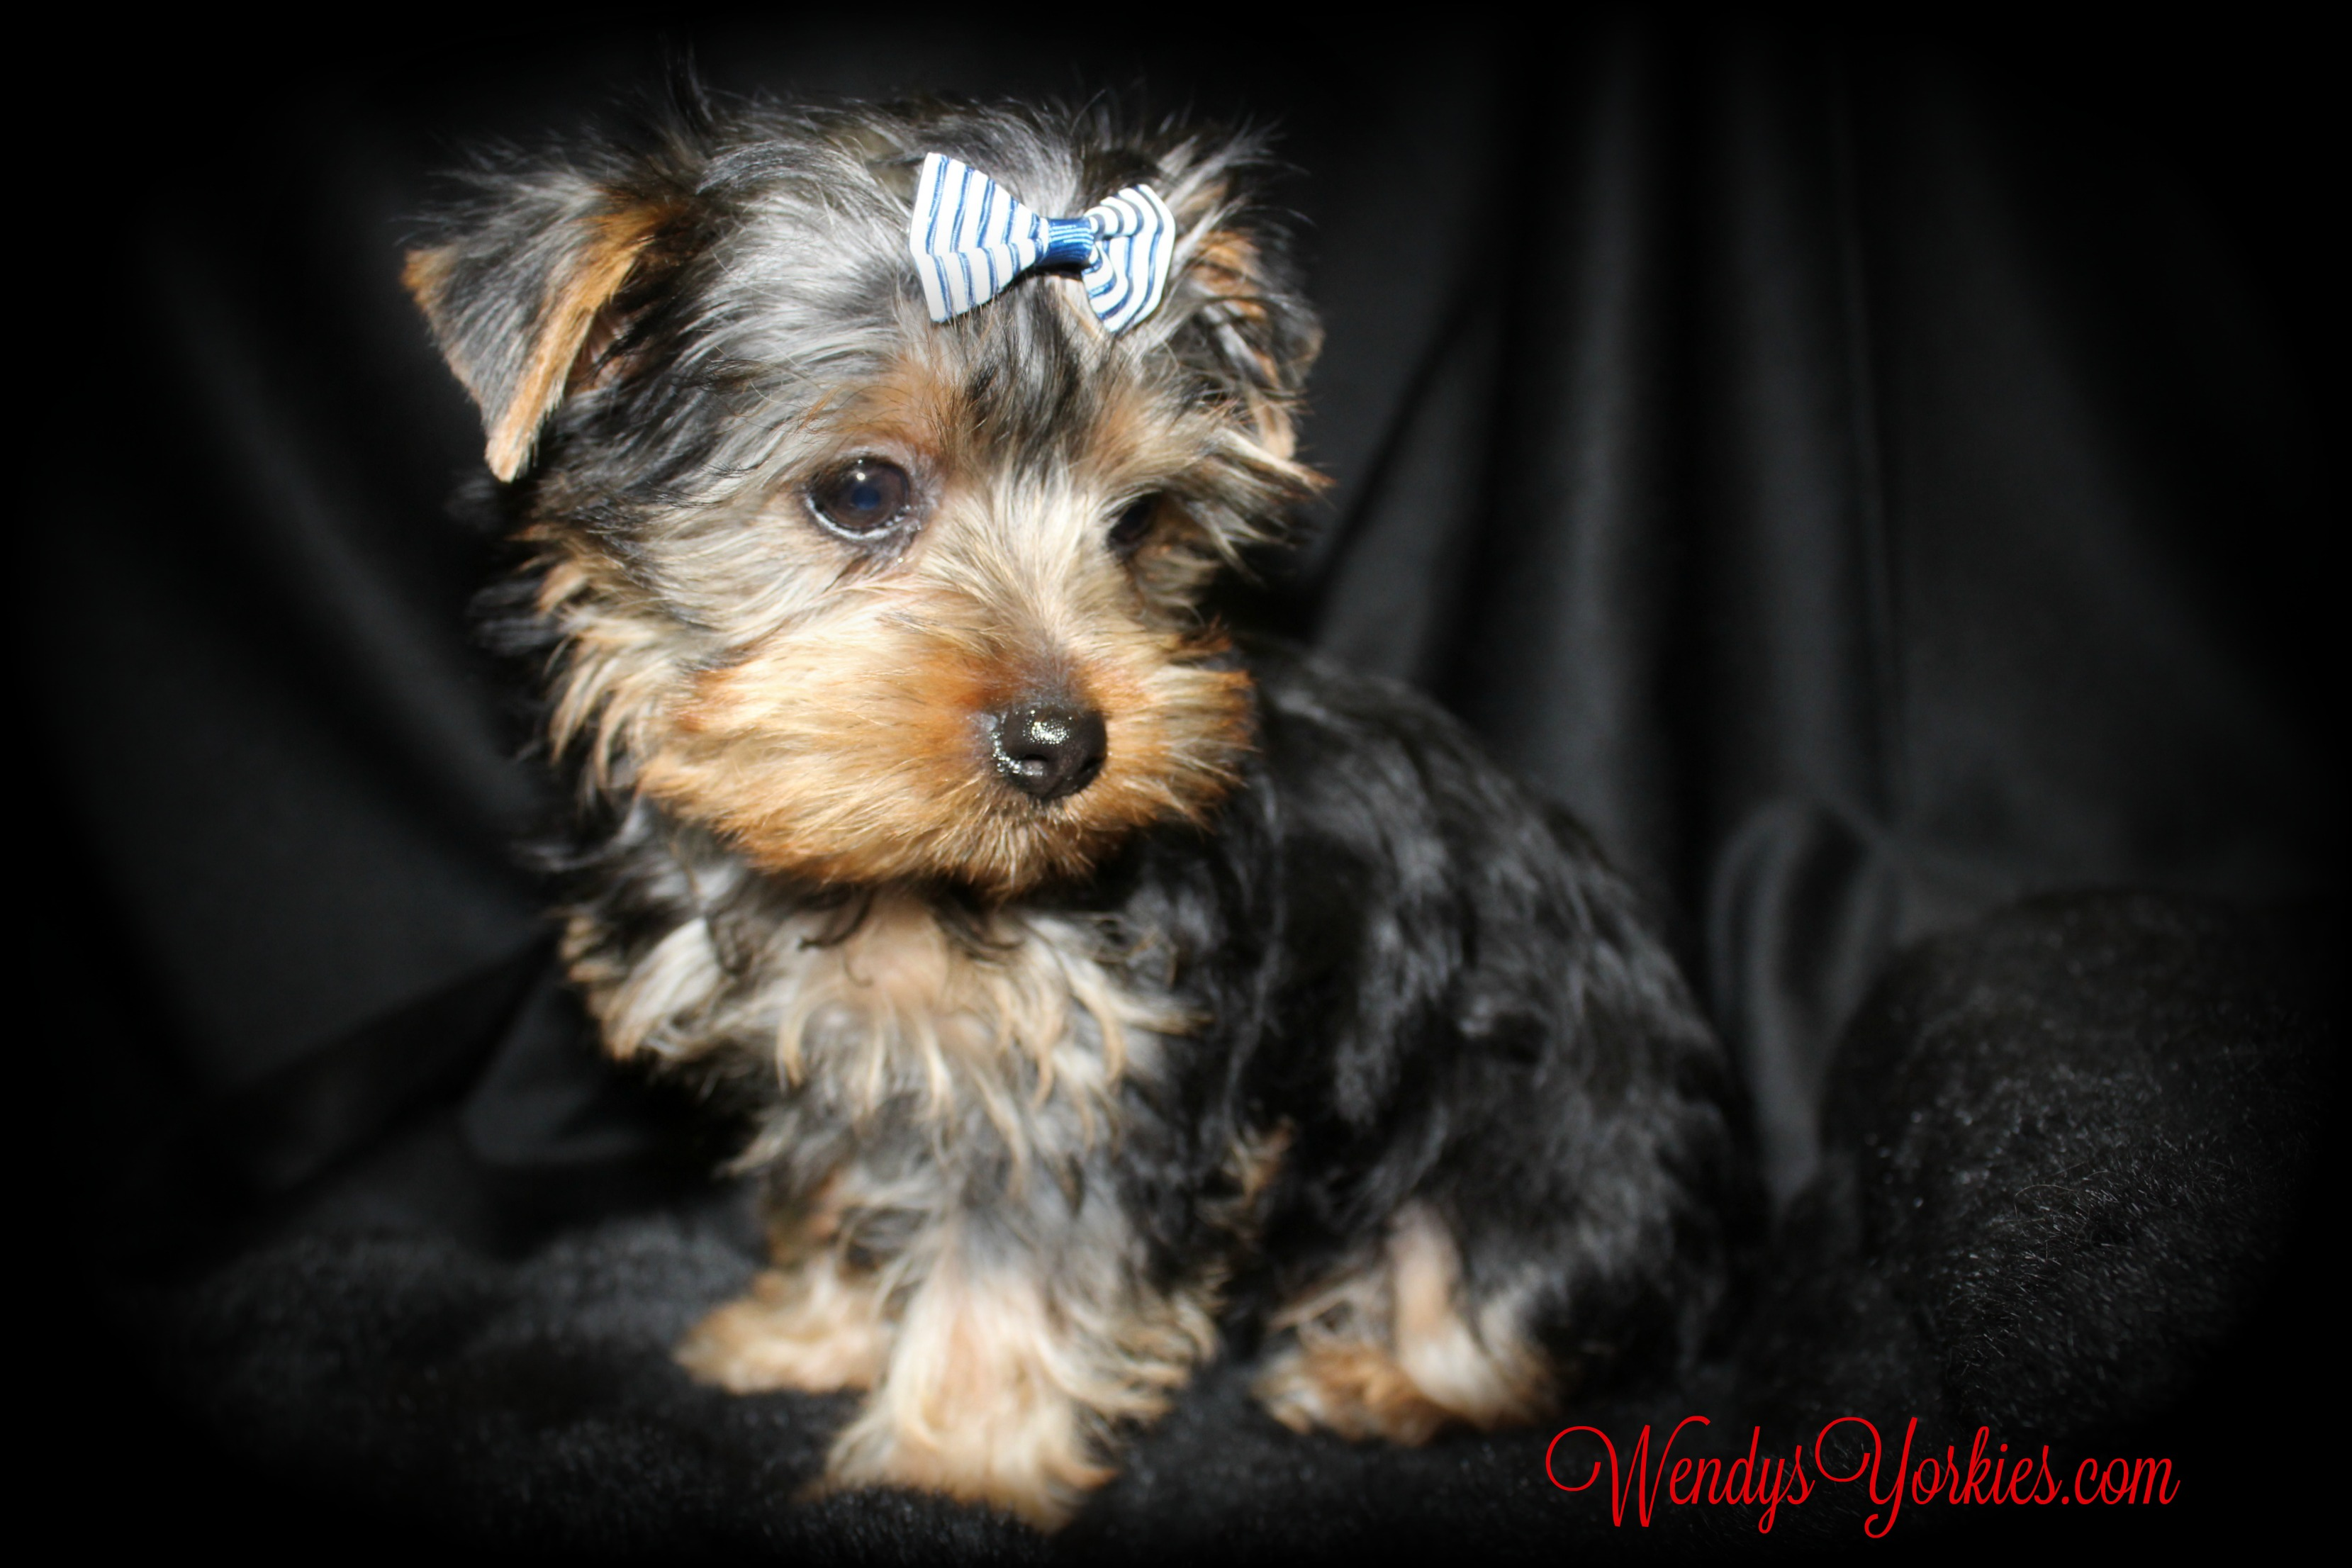 WendysYorkies, Yorkie puppy for sale, Jax